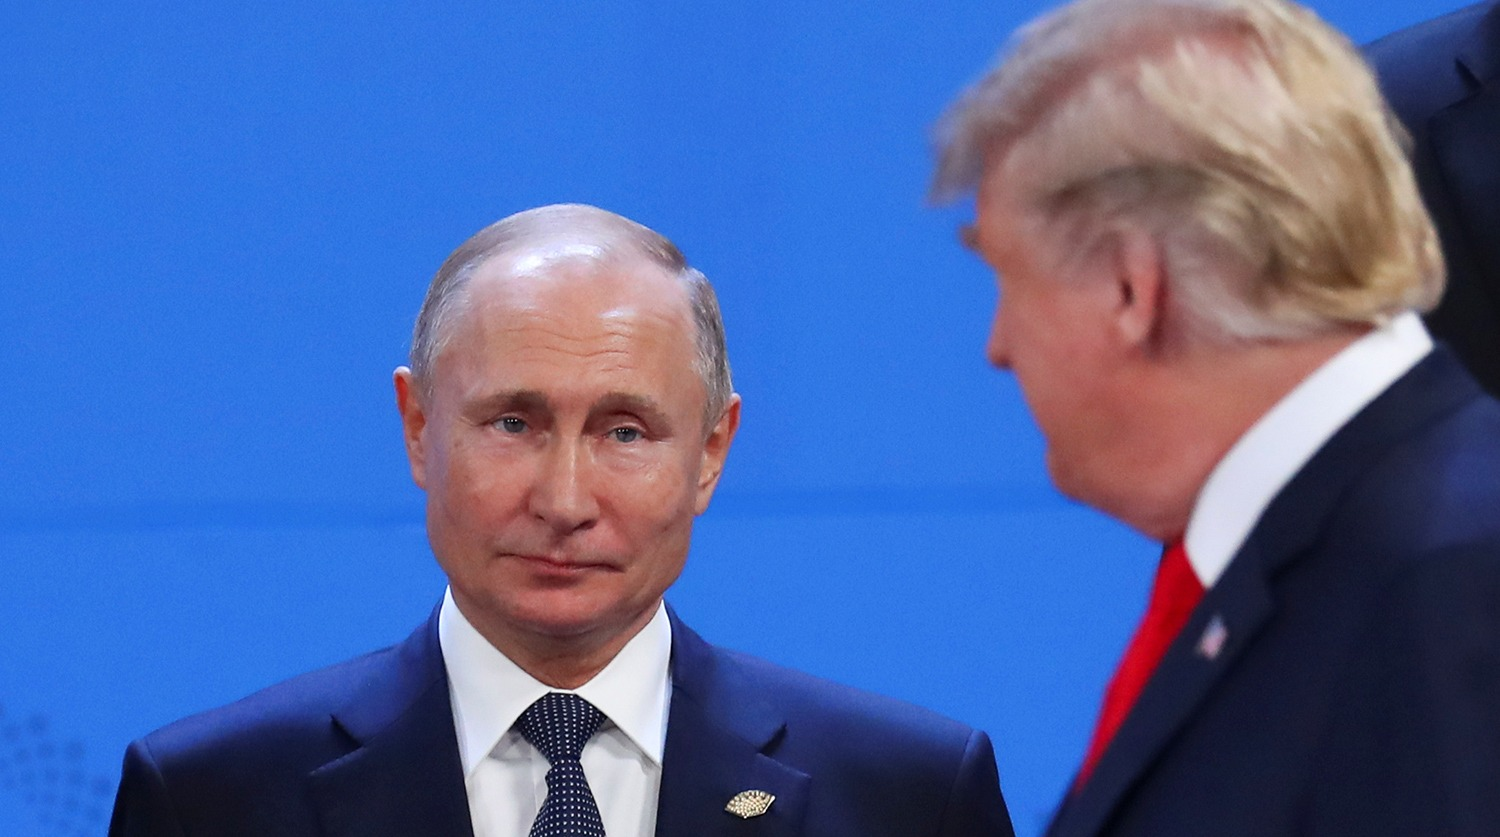 G20 summit Putin and Trump shaped fellow travellers, did not even say hello to each other